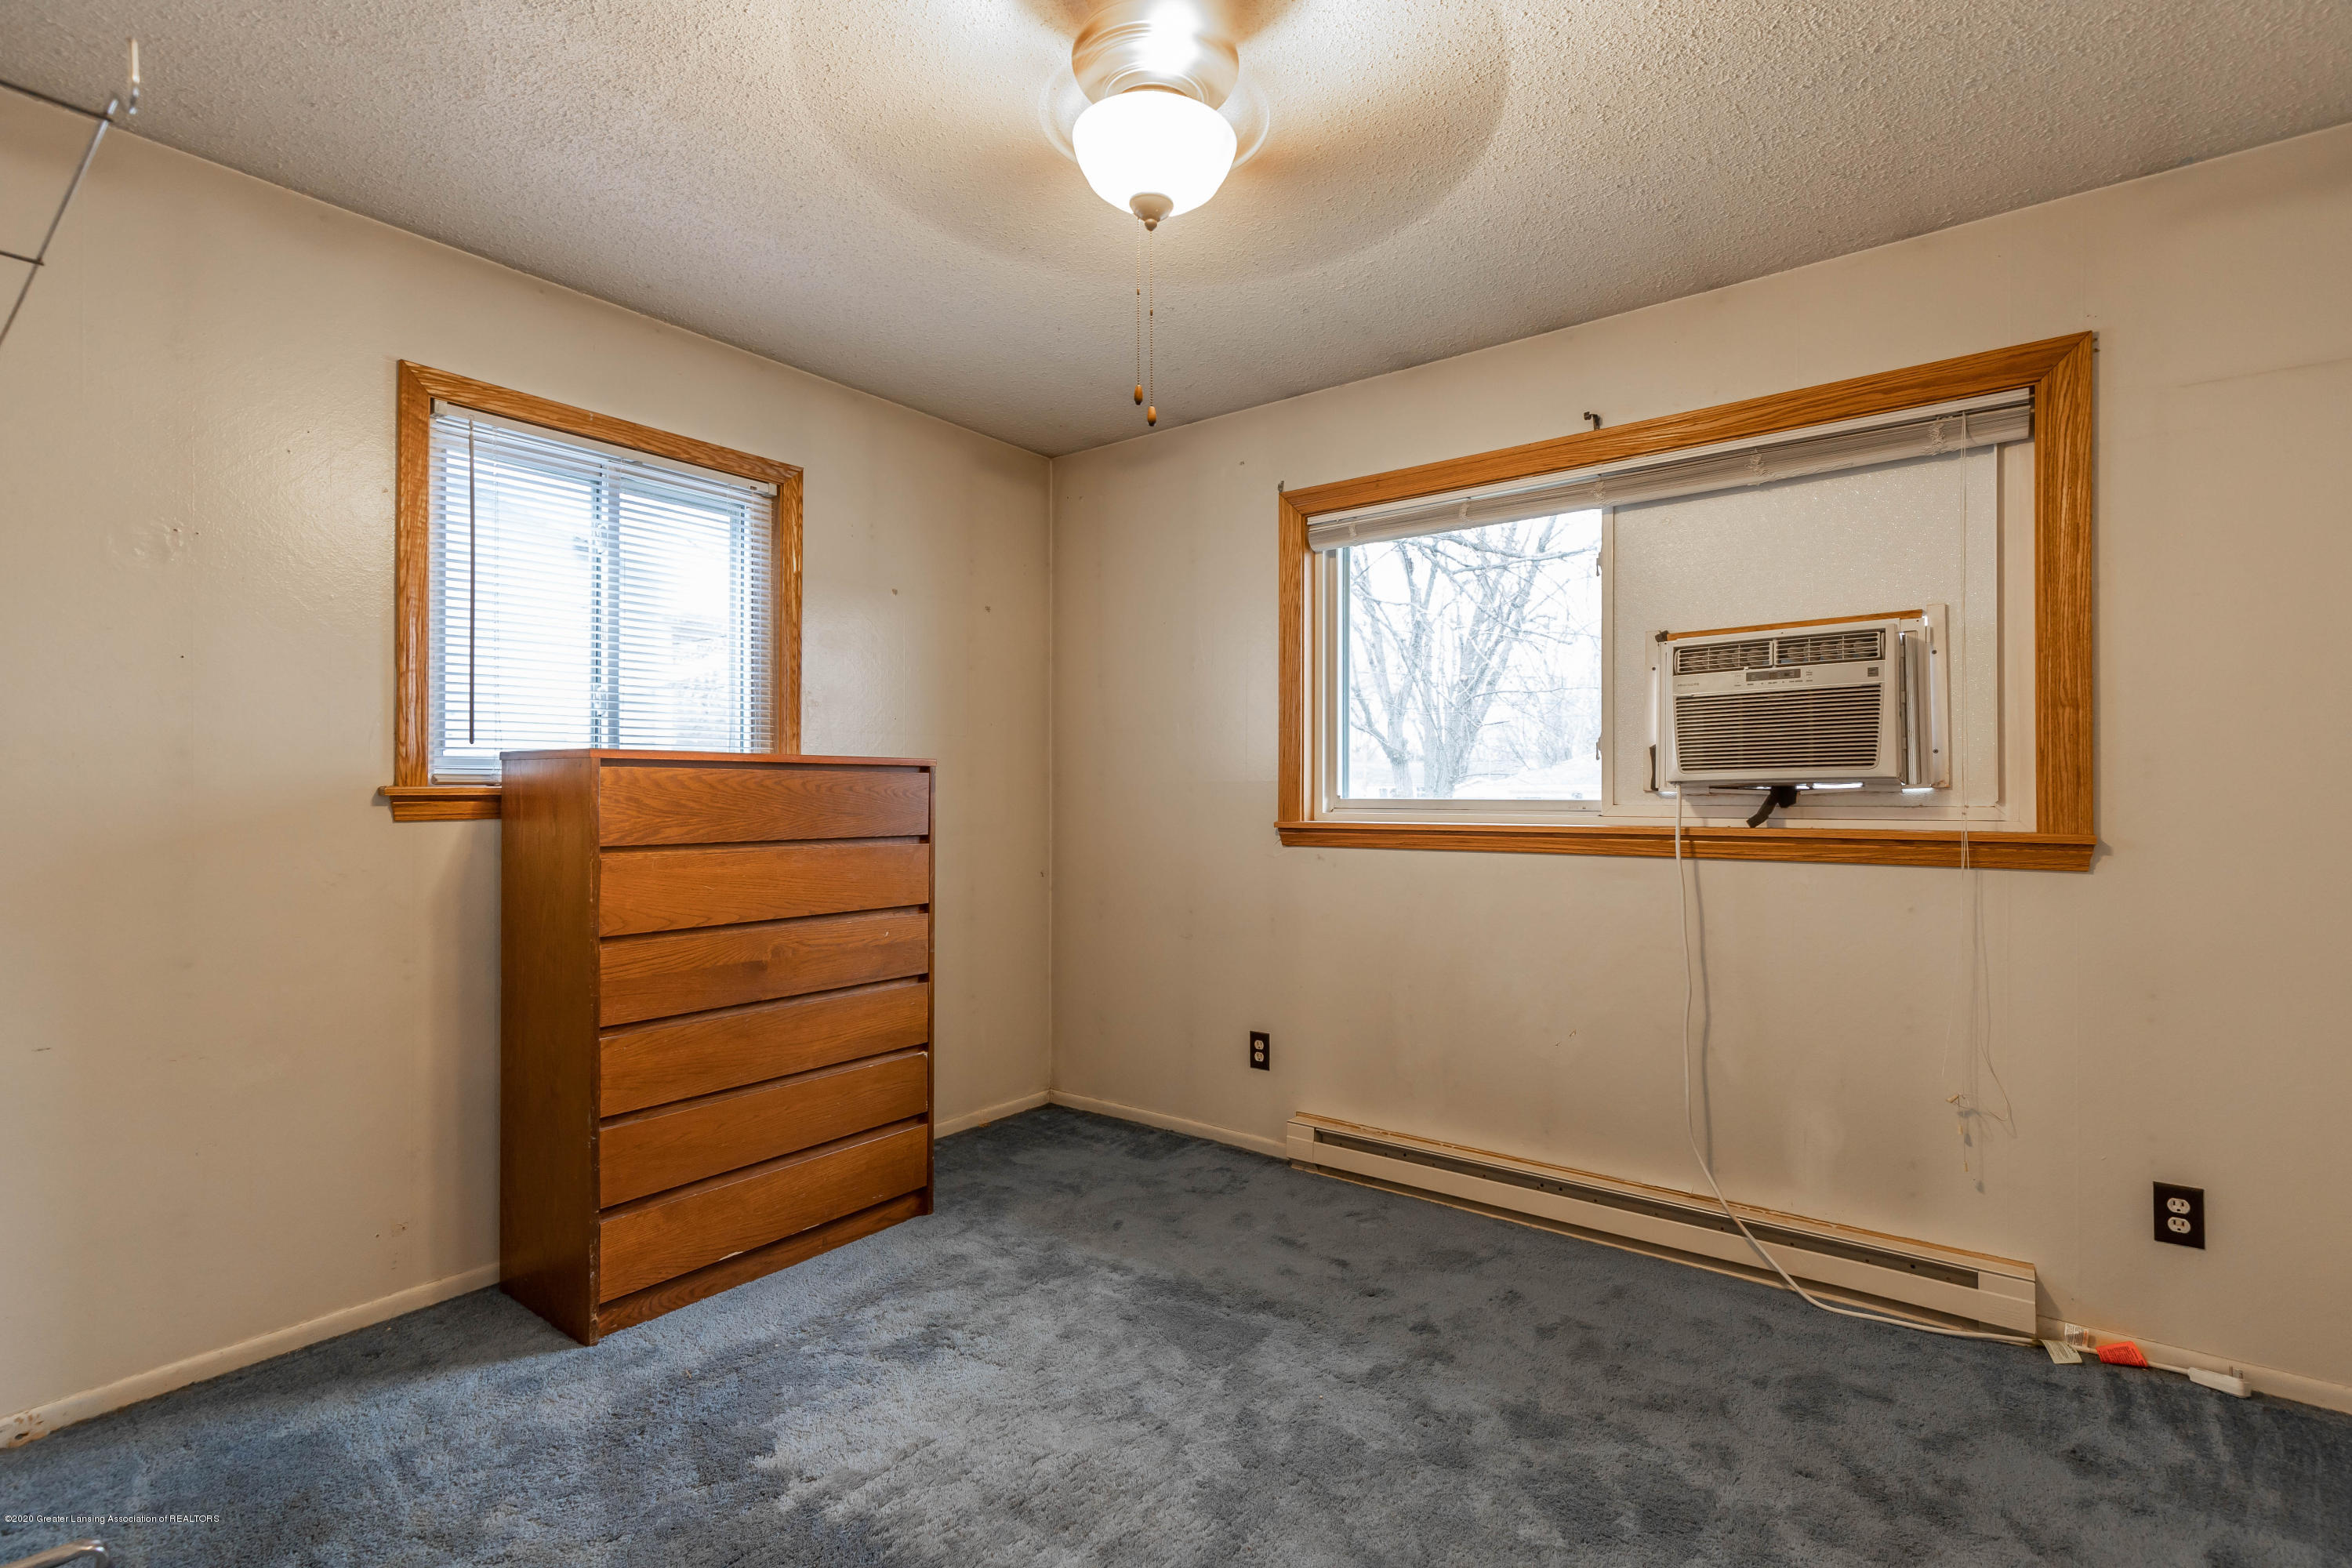 215 Oakwood St - Bedroom - 11